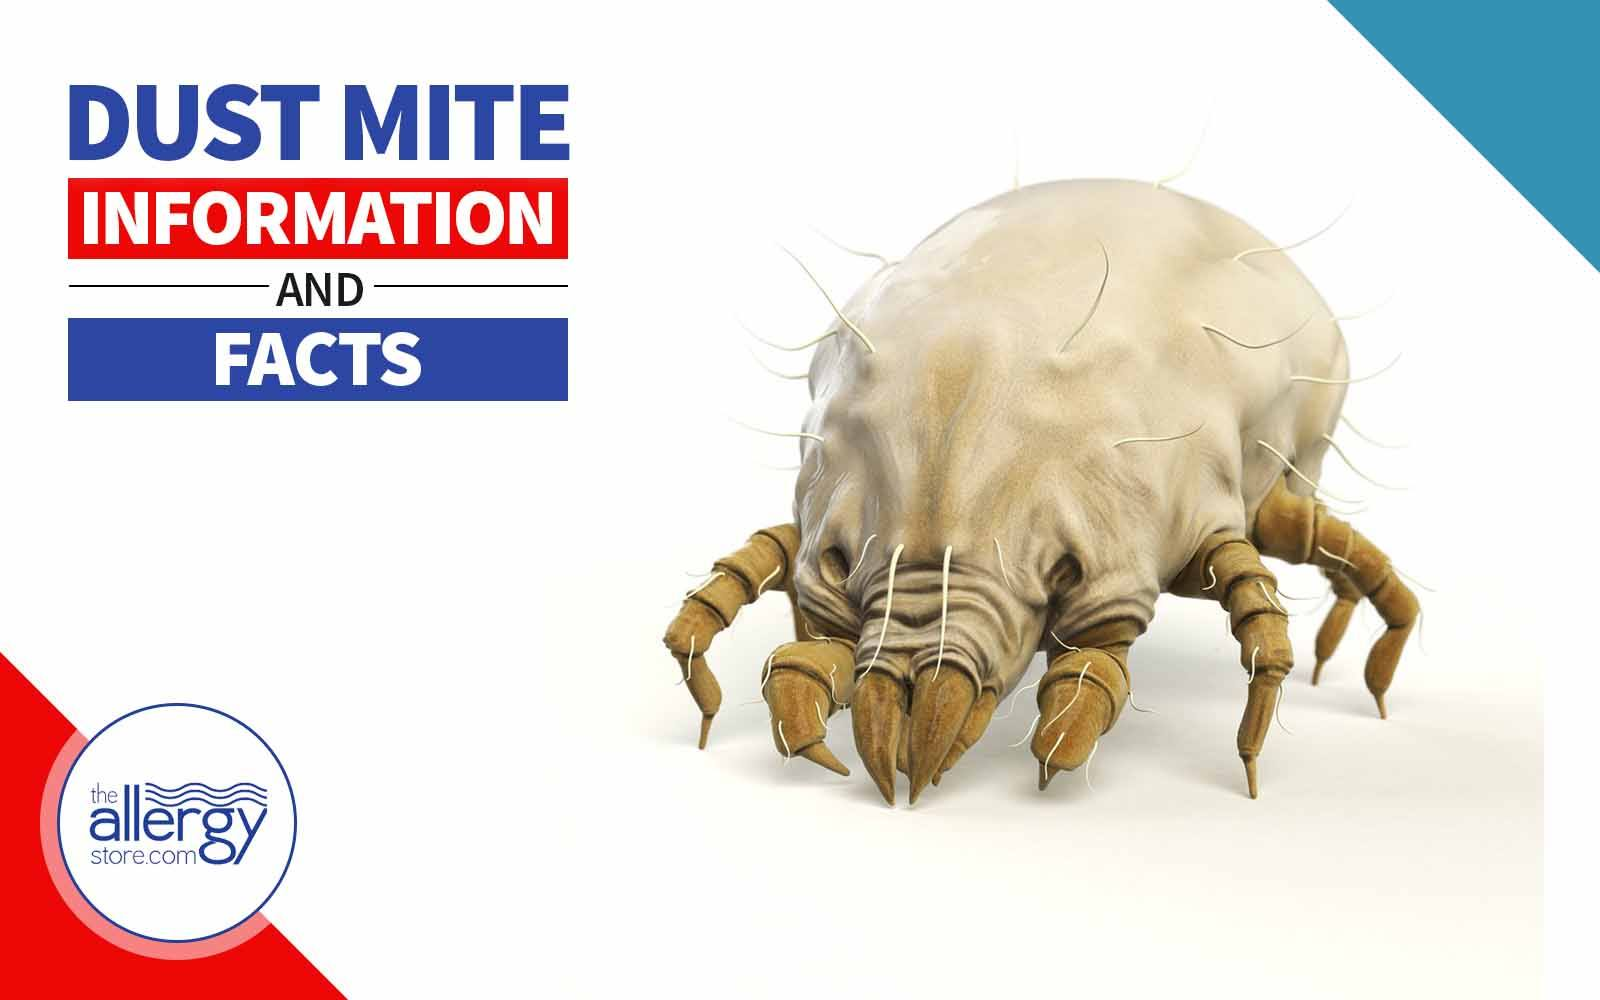 Dust Mite Information & Facts - Know the Enemy